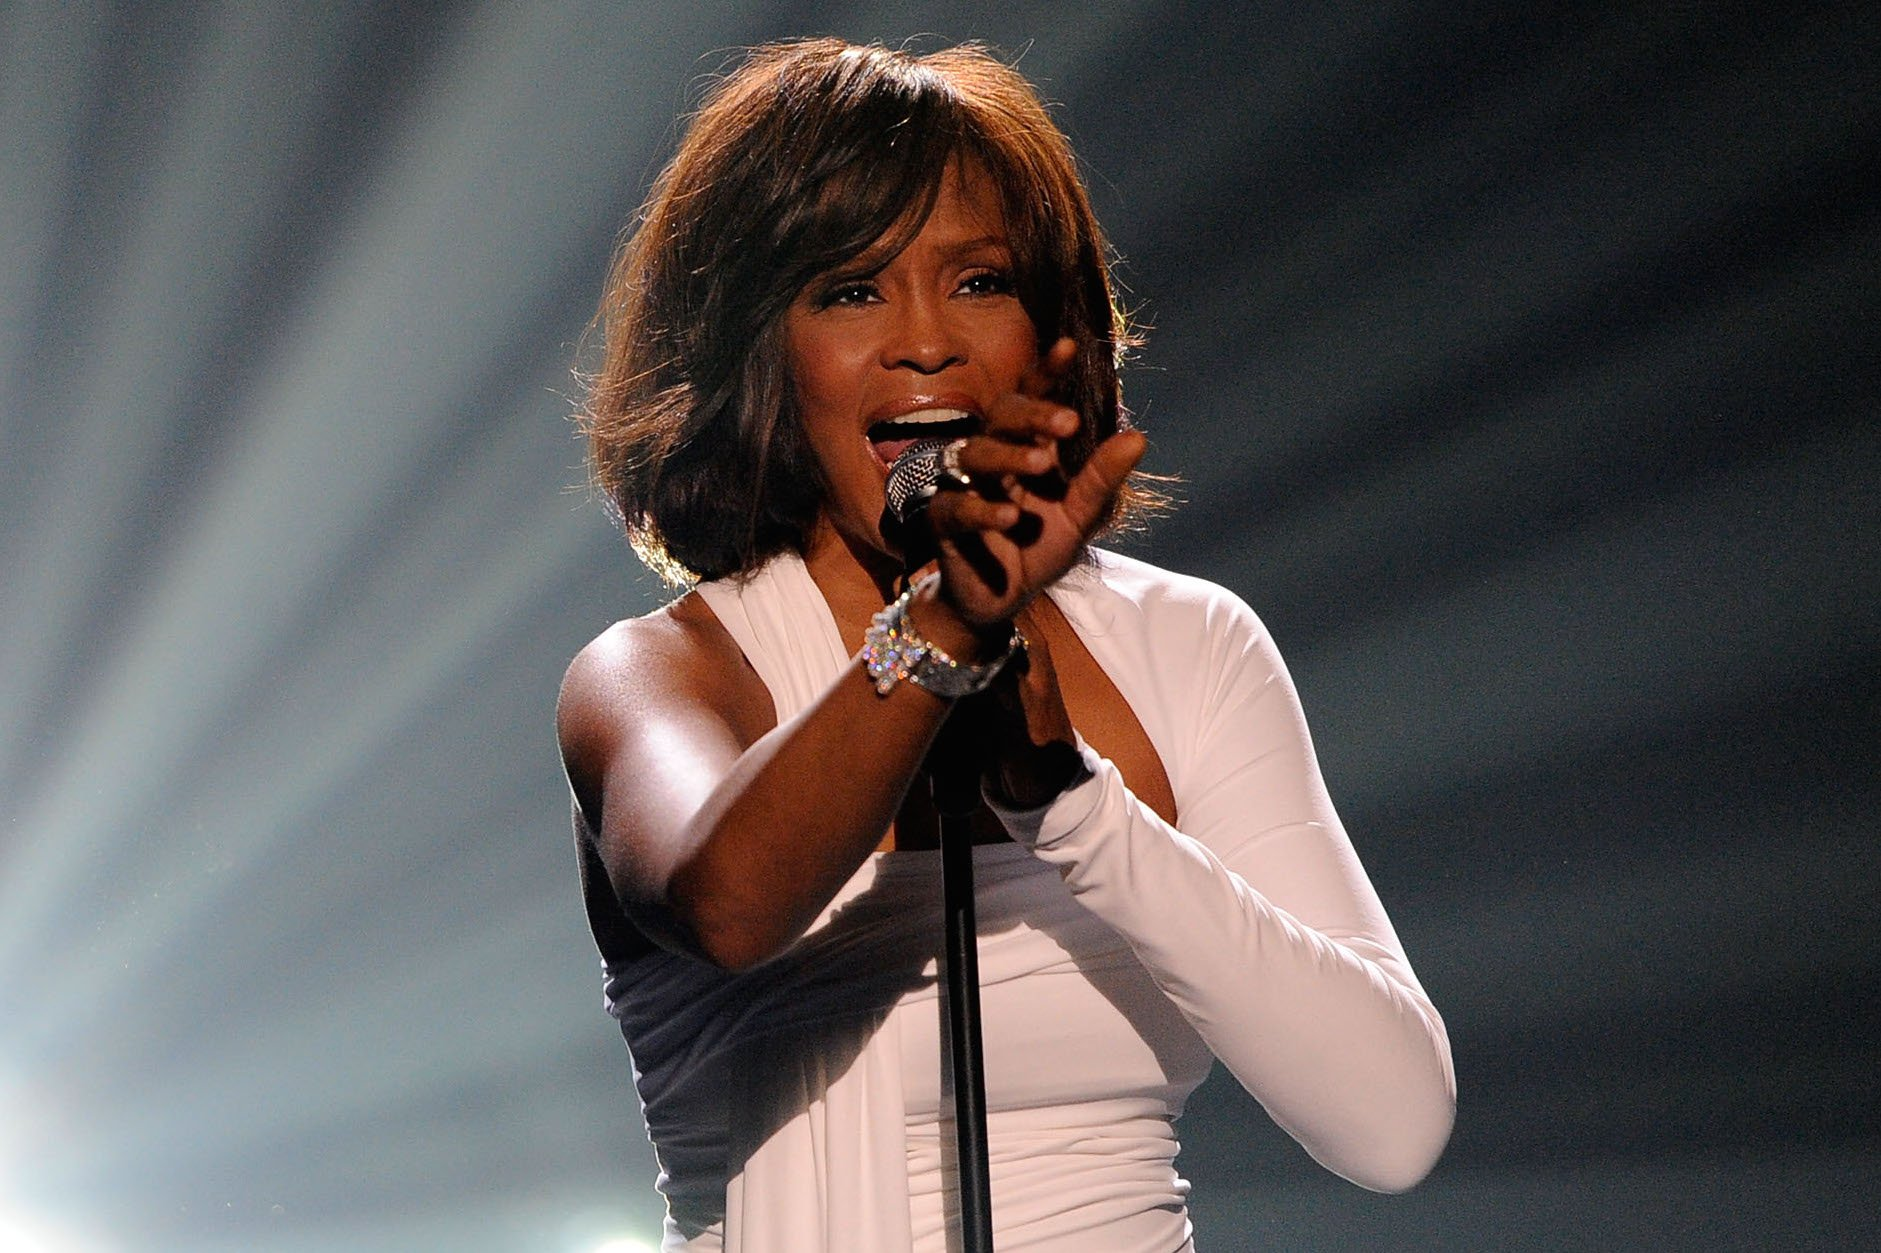 Whitney Houston Hologram Will Tour in 2016 | SPIN